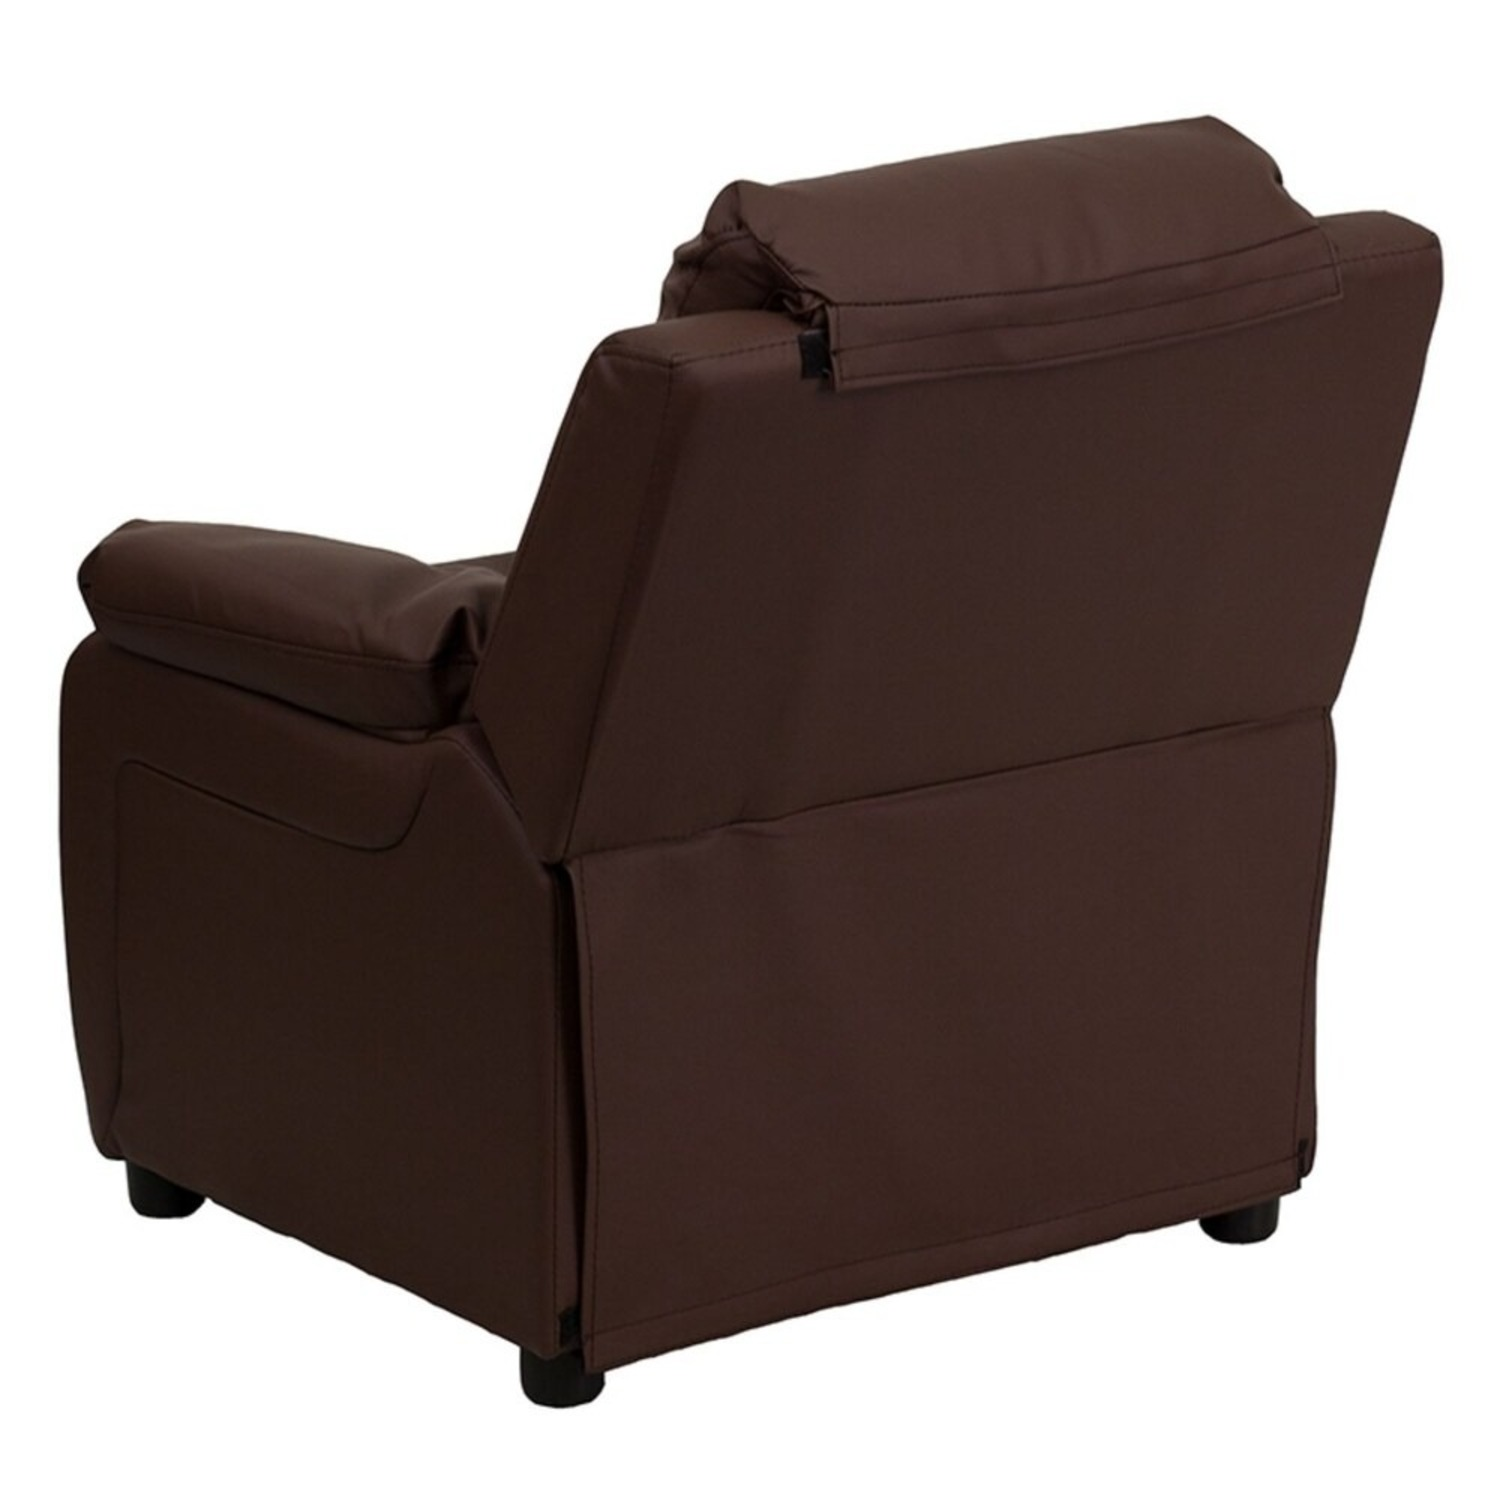 Wayfair Kids Leather Recliner - image-3